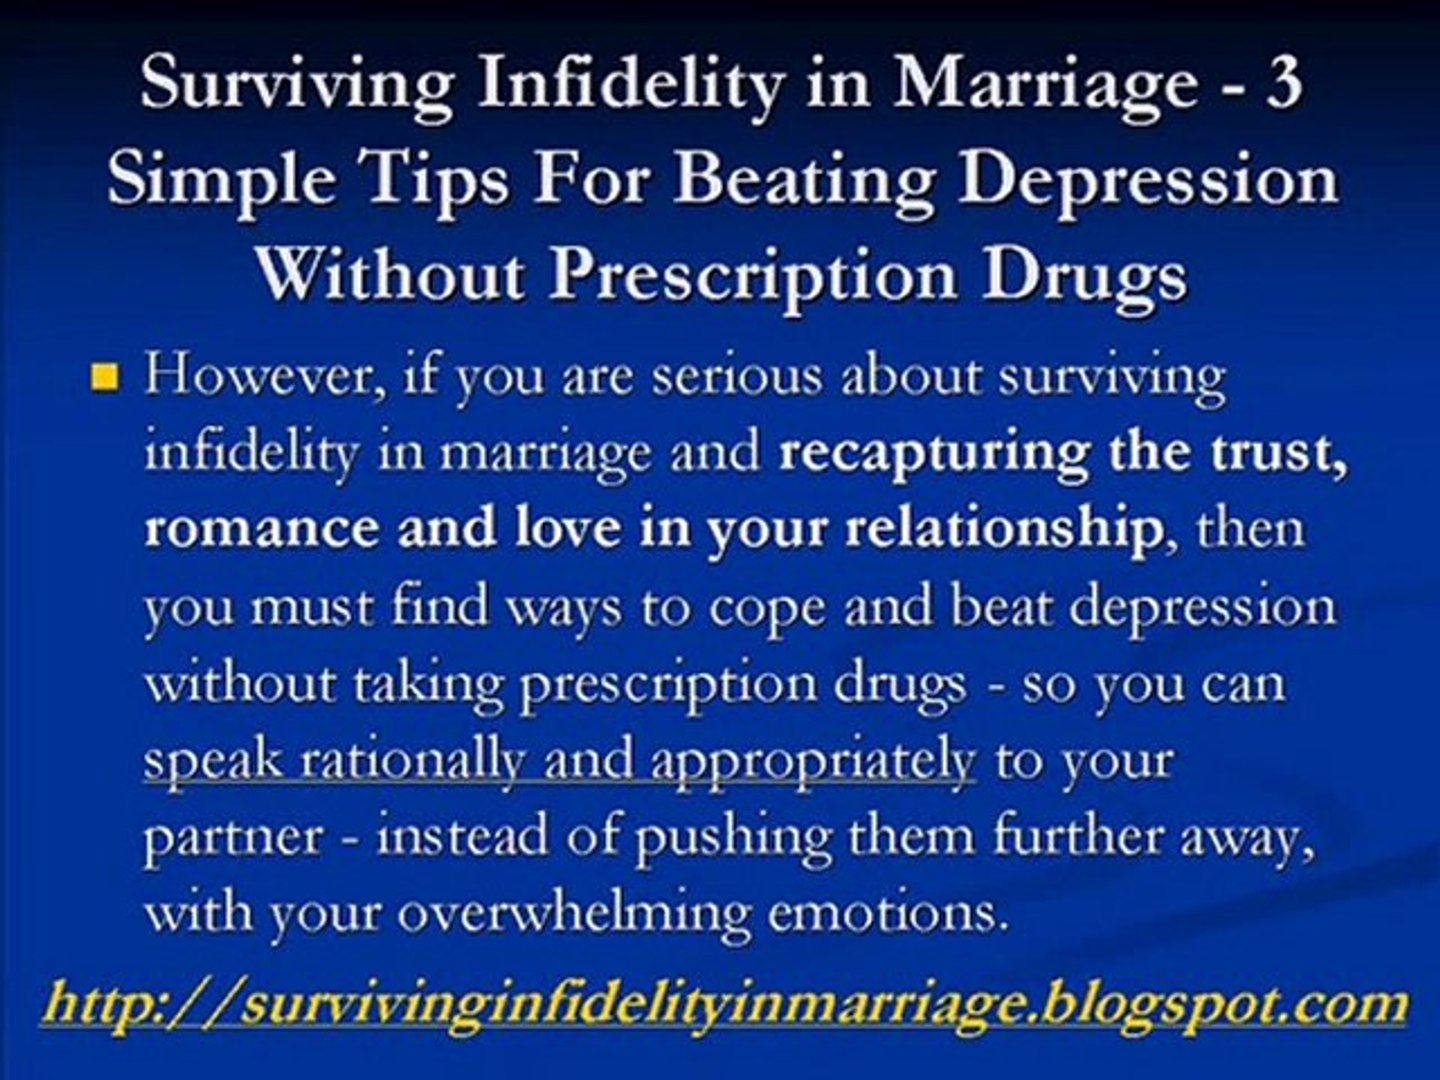 Surviving Infidelity in Marriage (3 Simple Tips) Beat